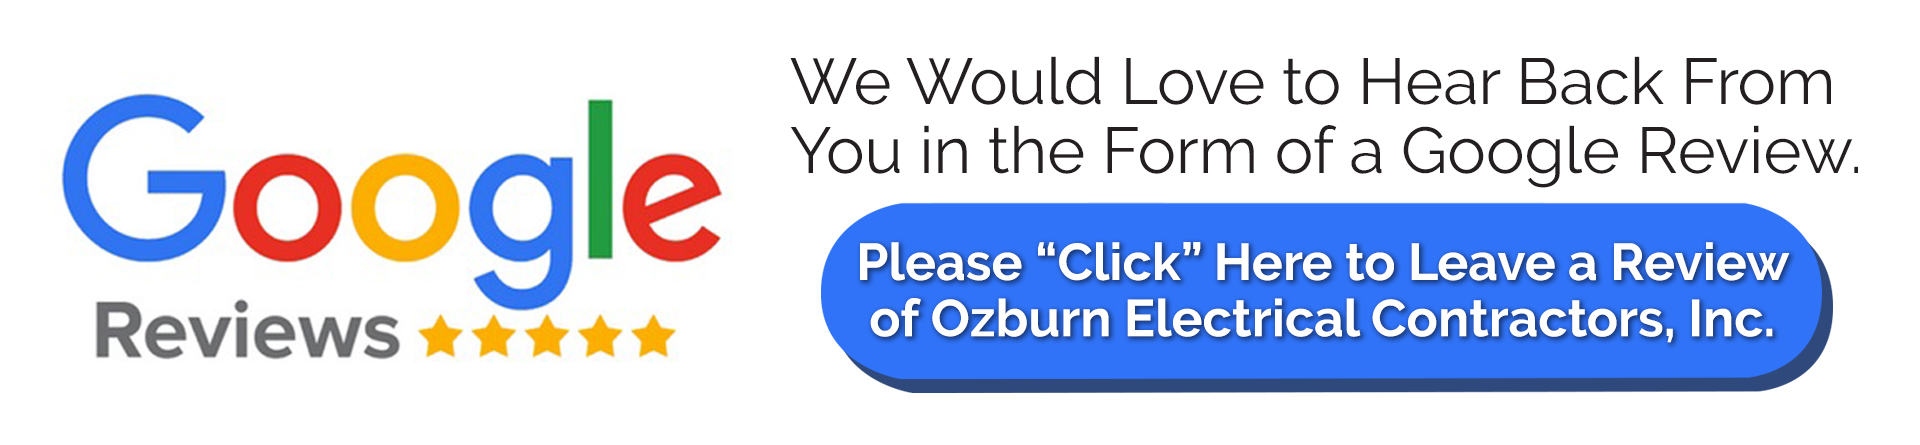 Ozburn Electric Google Review